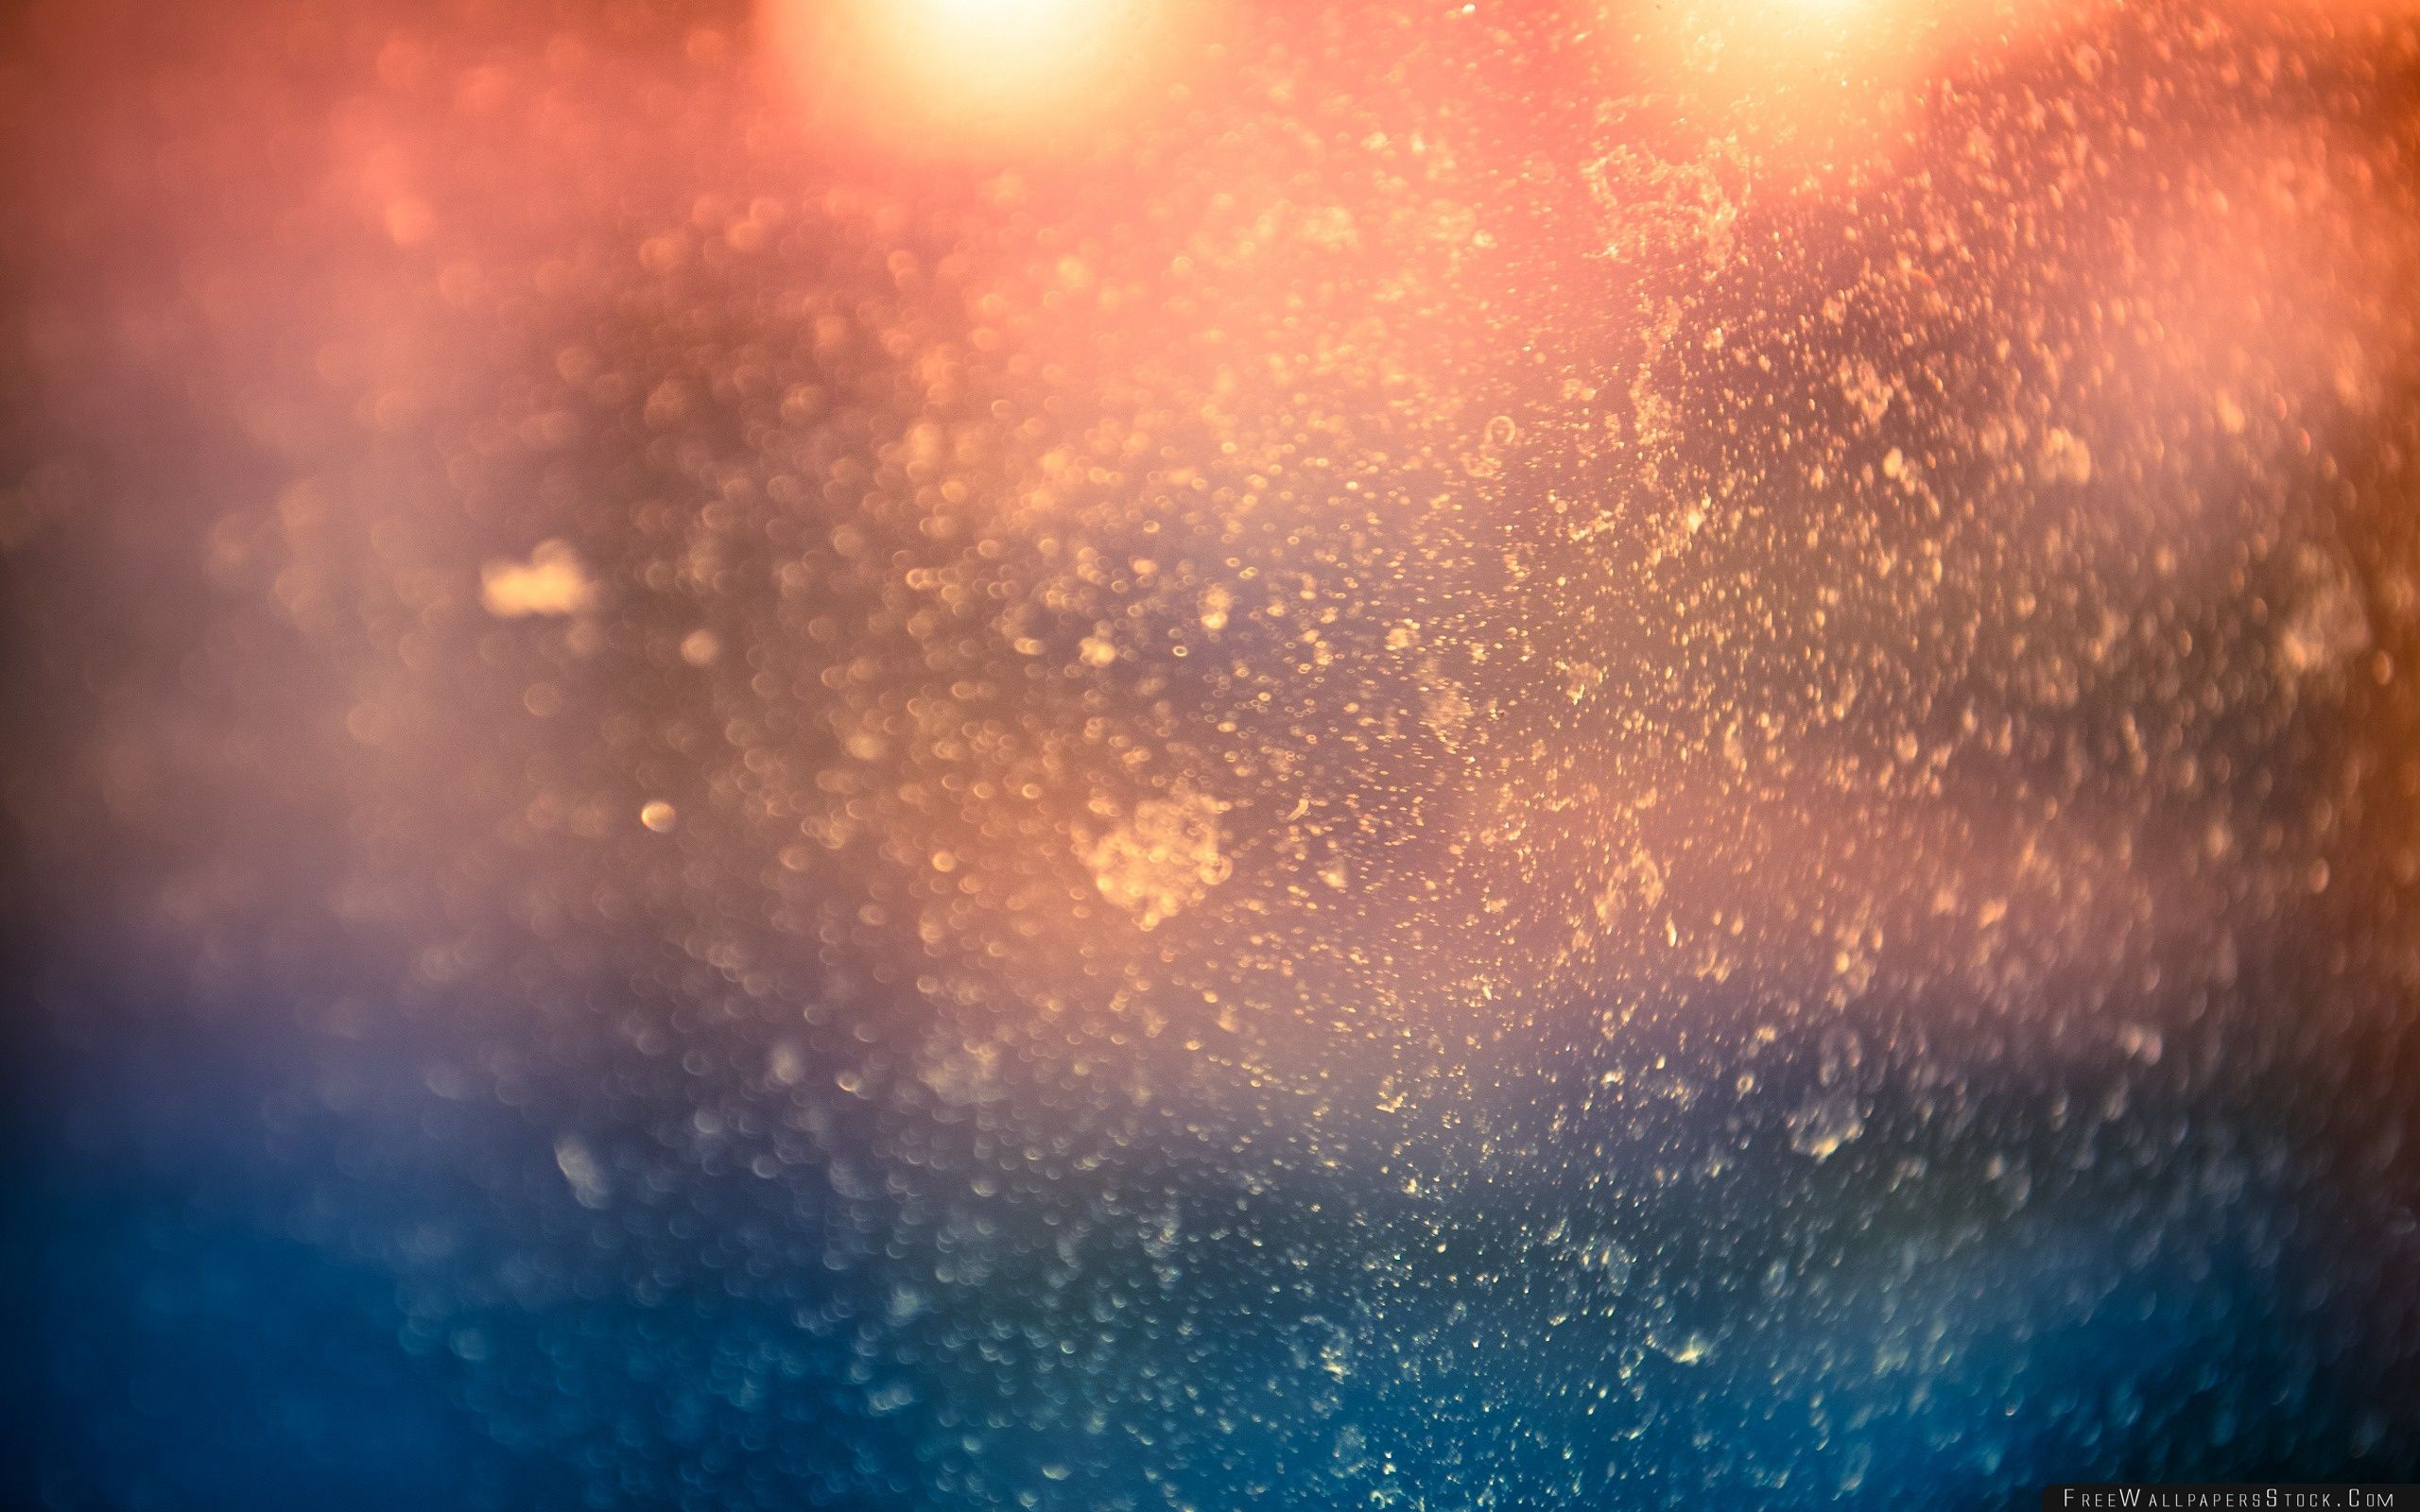 Download Free Wallpaper Water Drops Bokeh   Window Glass